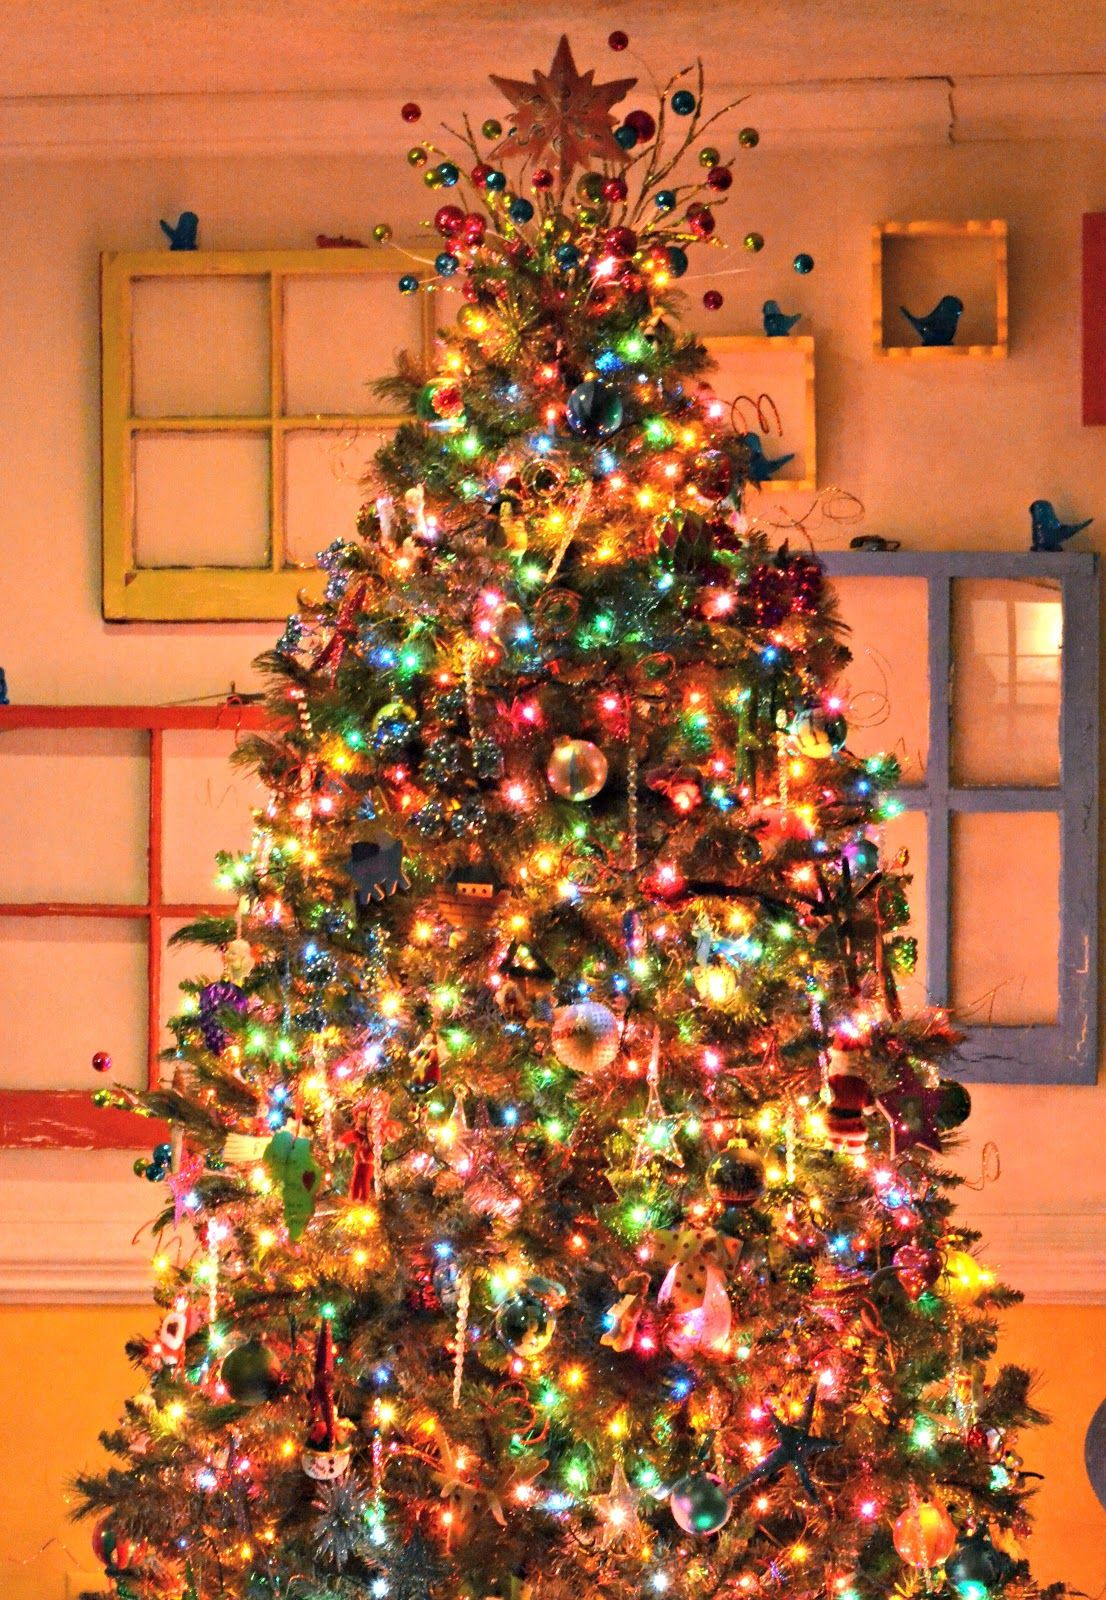 Pictures Of Decorated Christmas Trees the intentional home: how to have a pretty christmas tree even